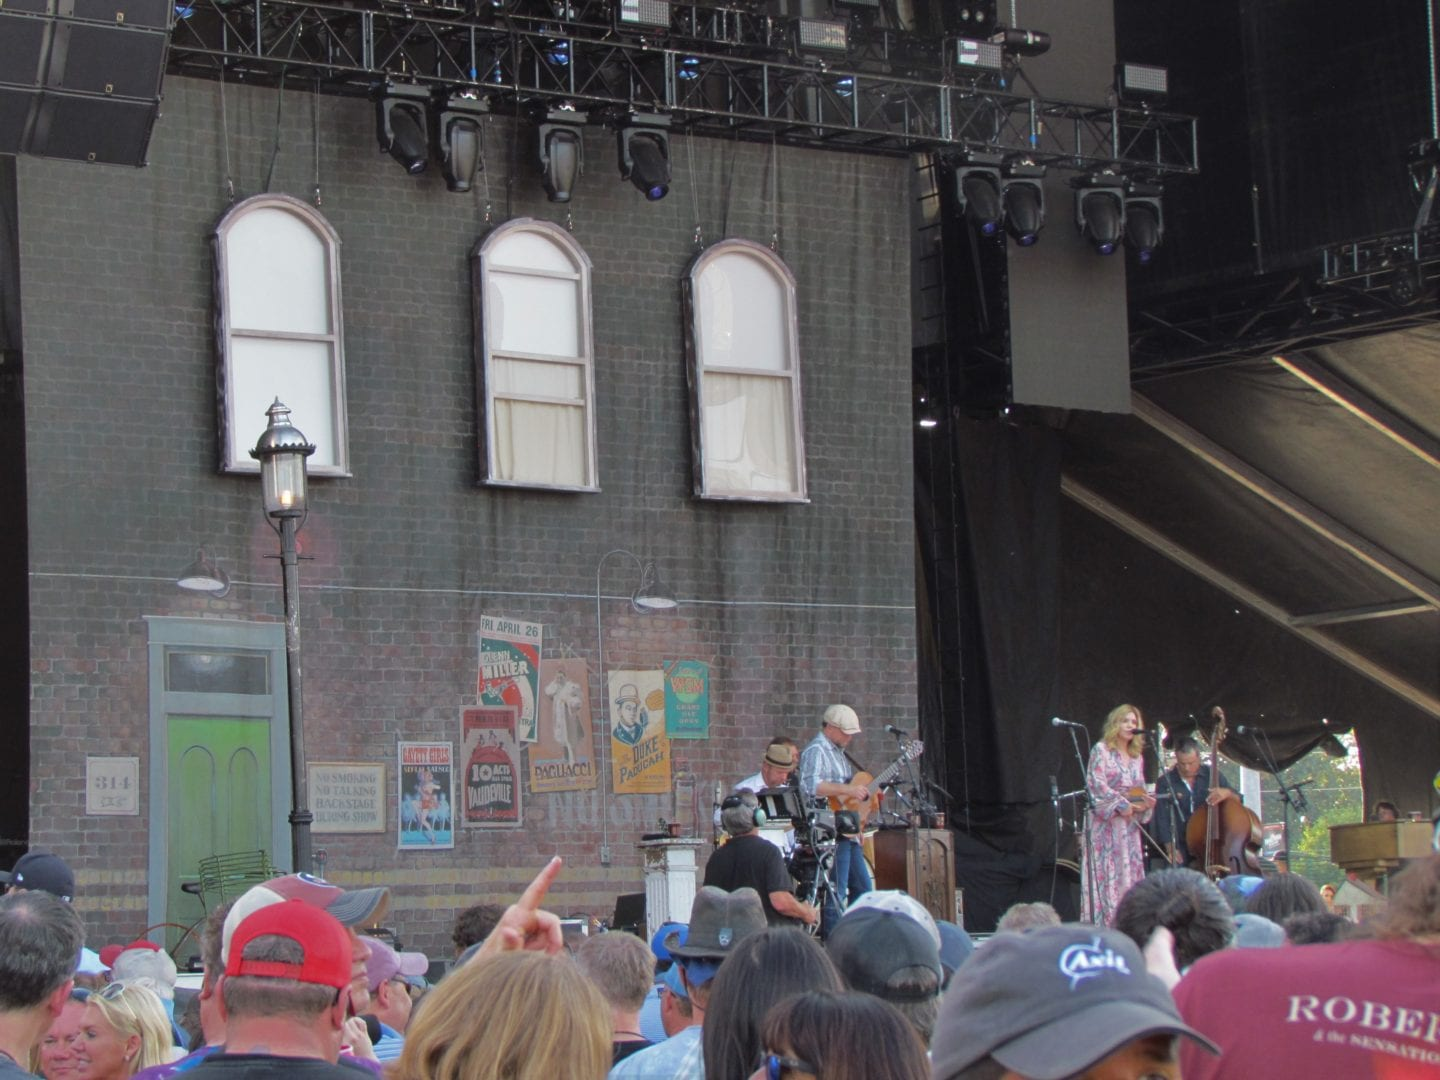 Alison Krauss performing on stage